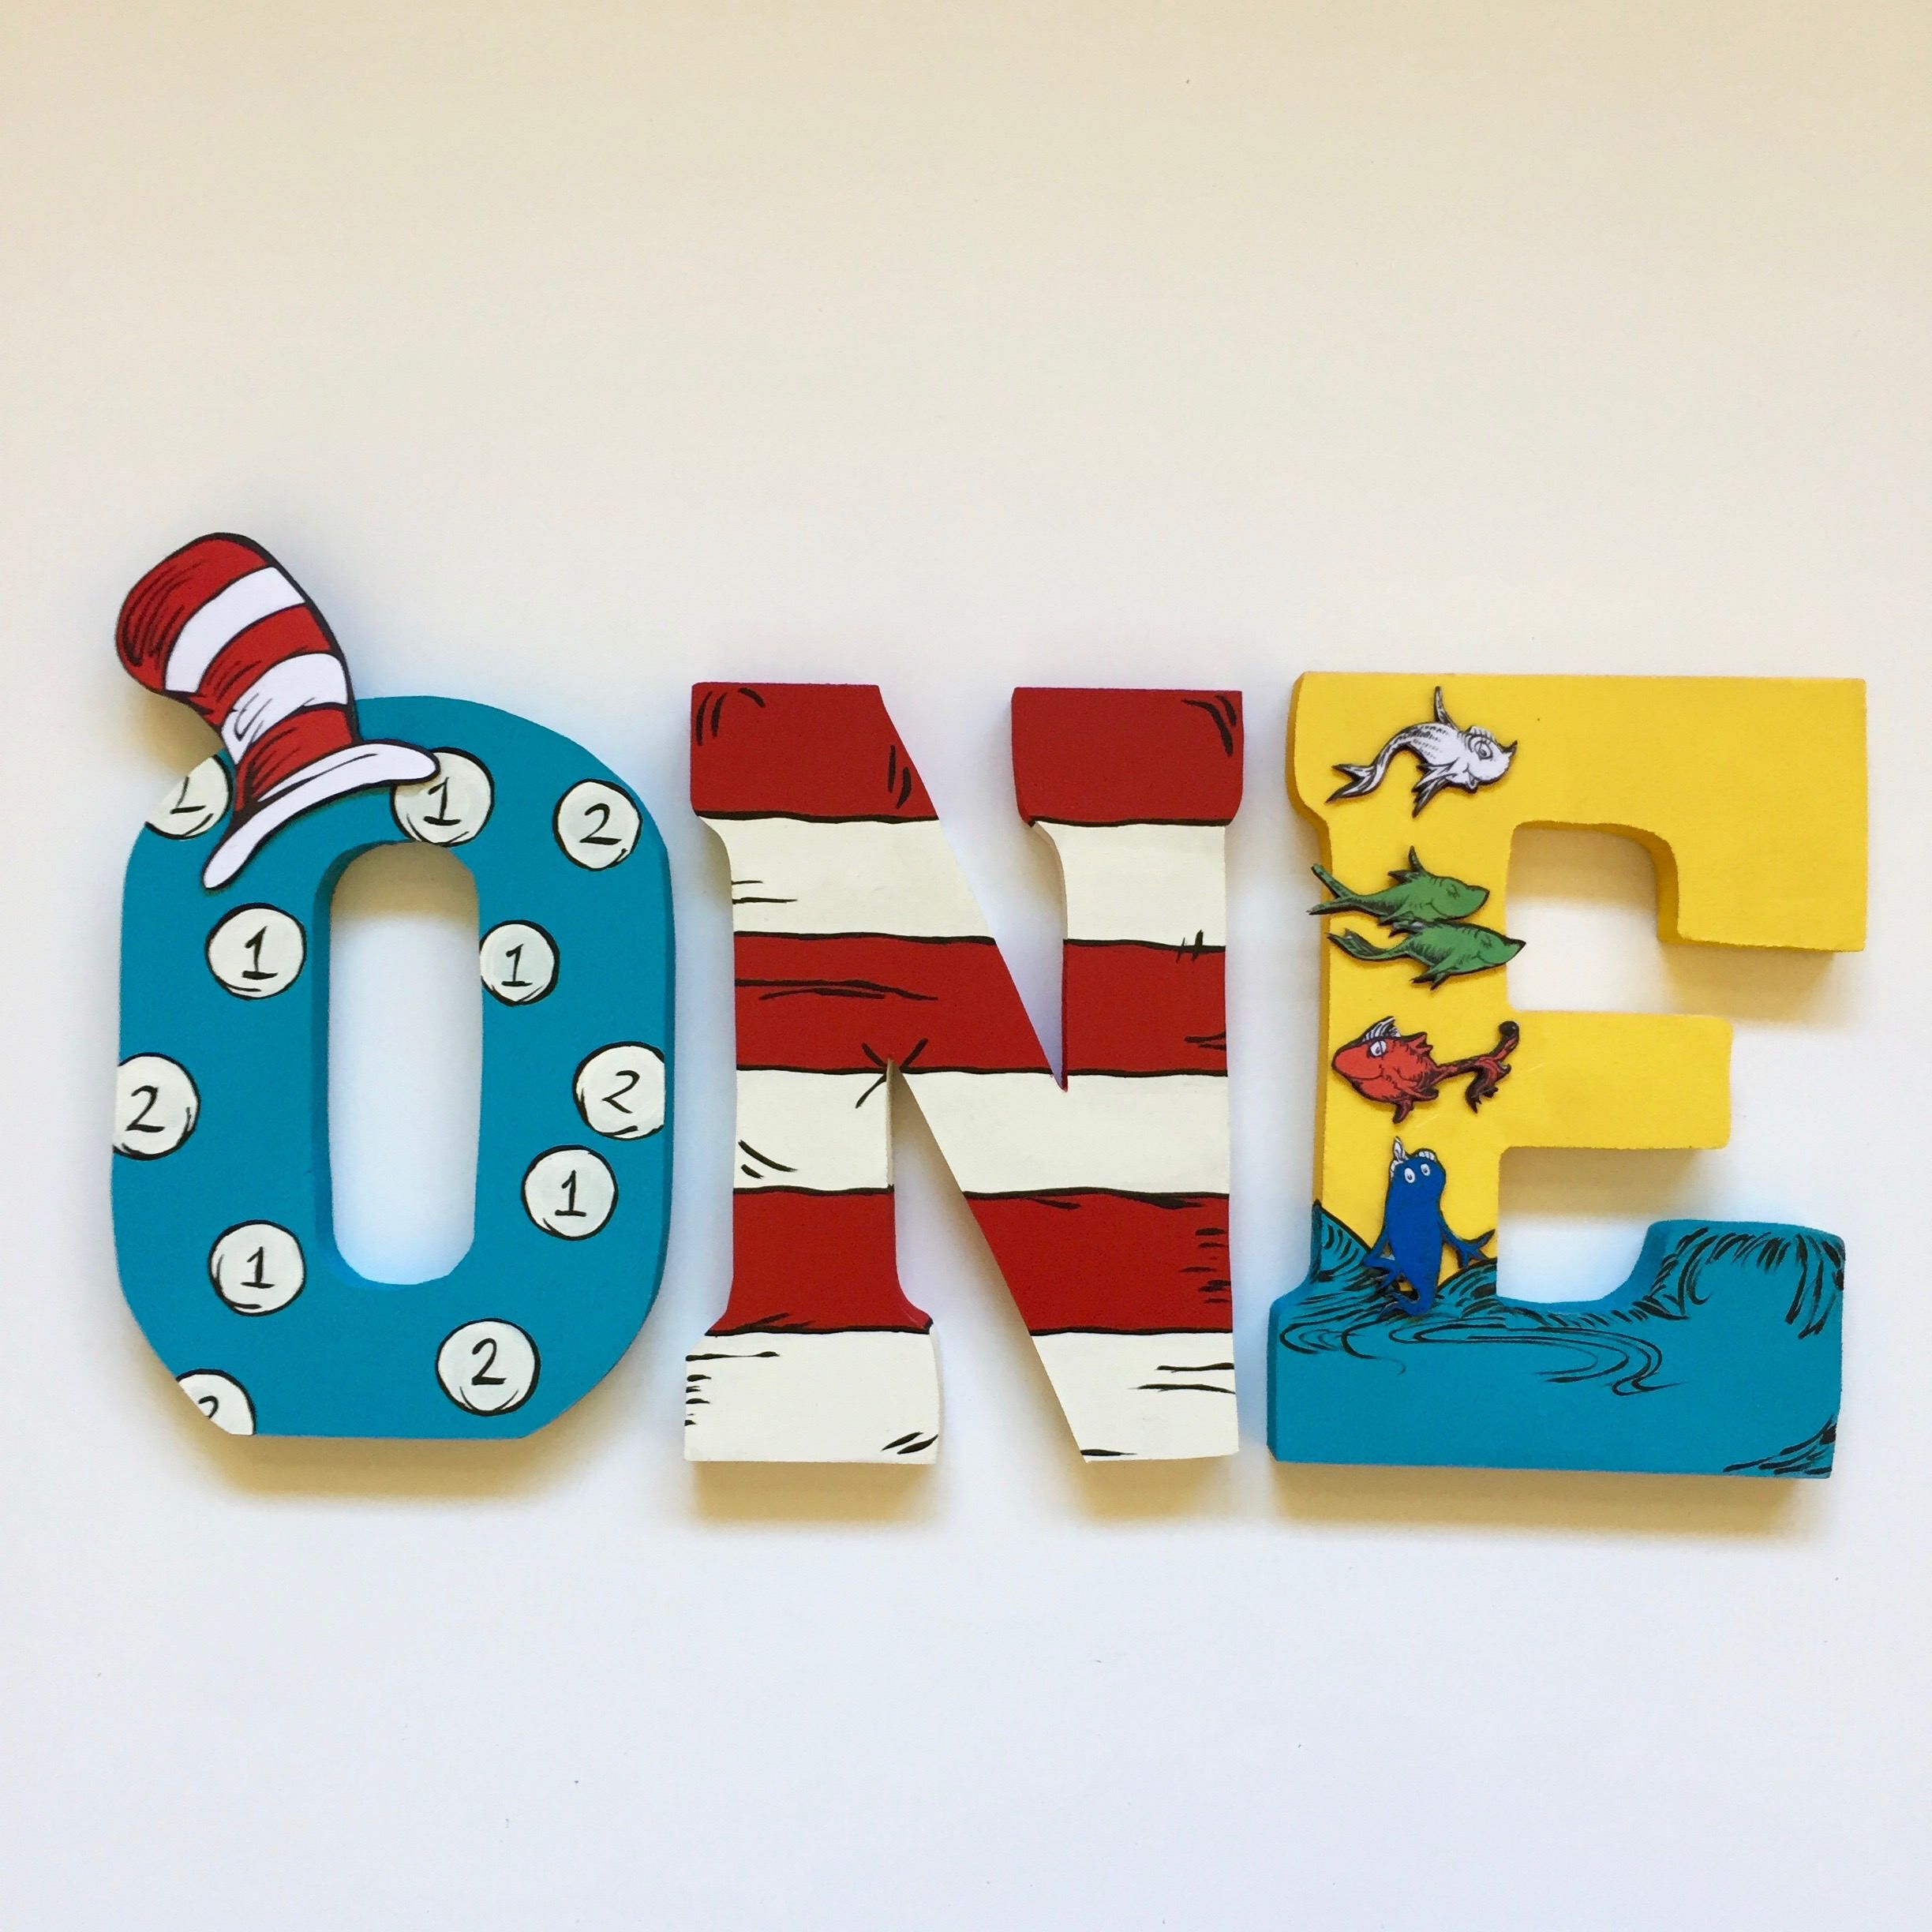 Dr Seuss   Cat In The Hat   Home Decor   Party Decorations   Wood Letters